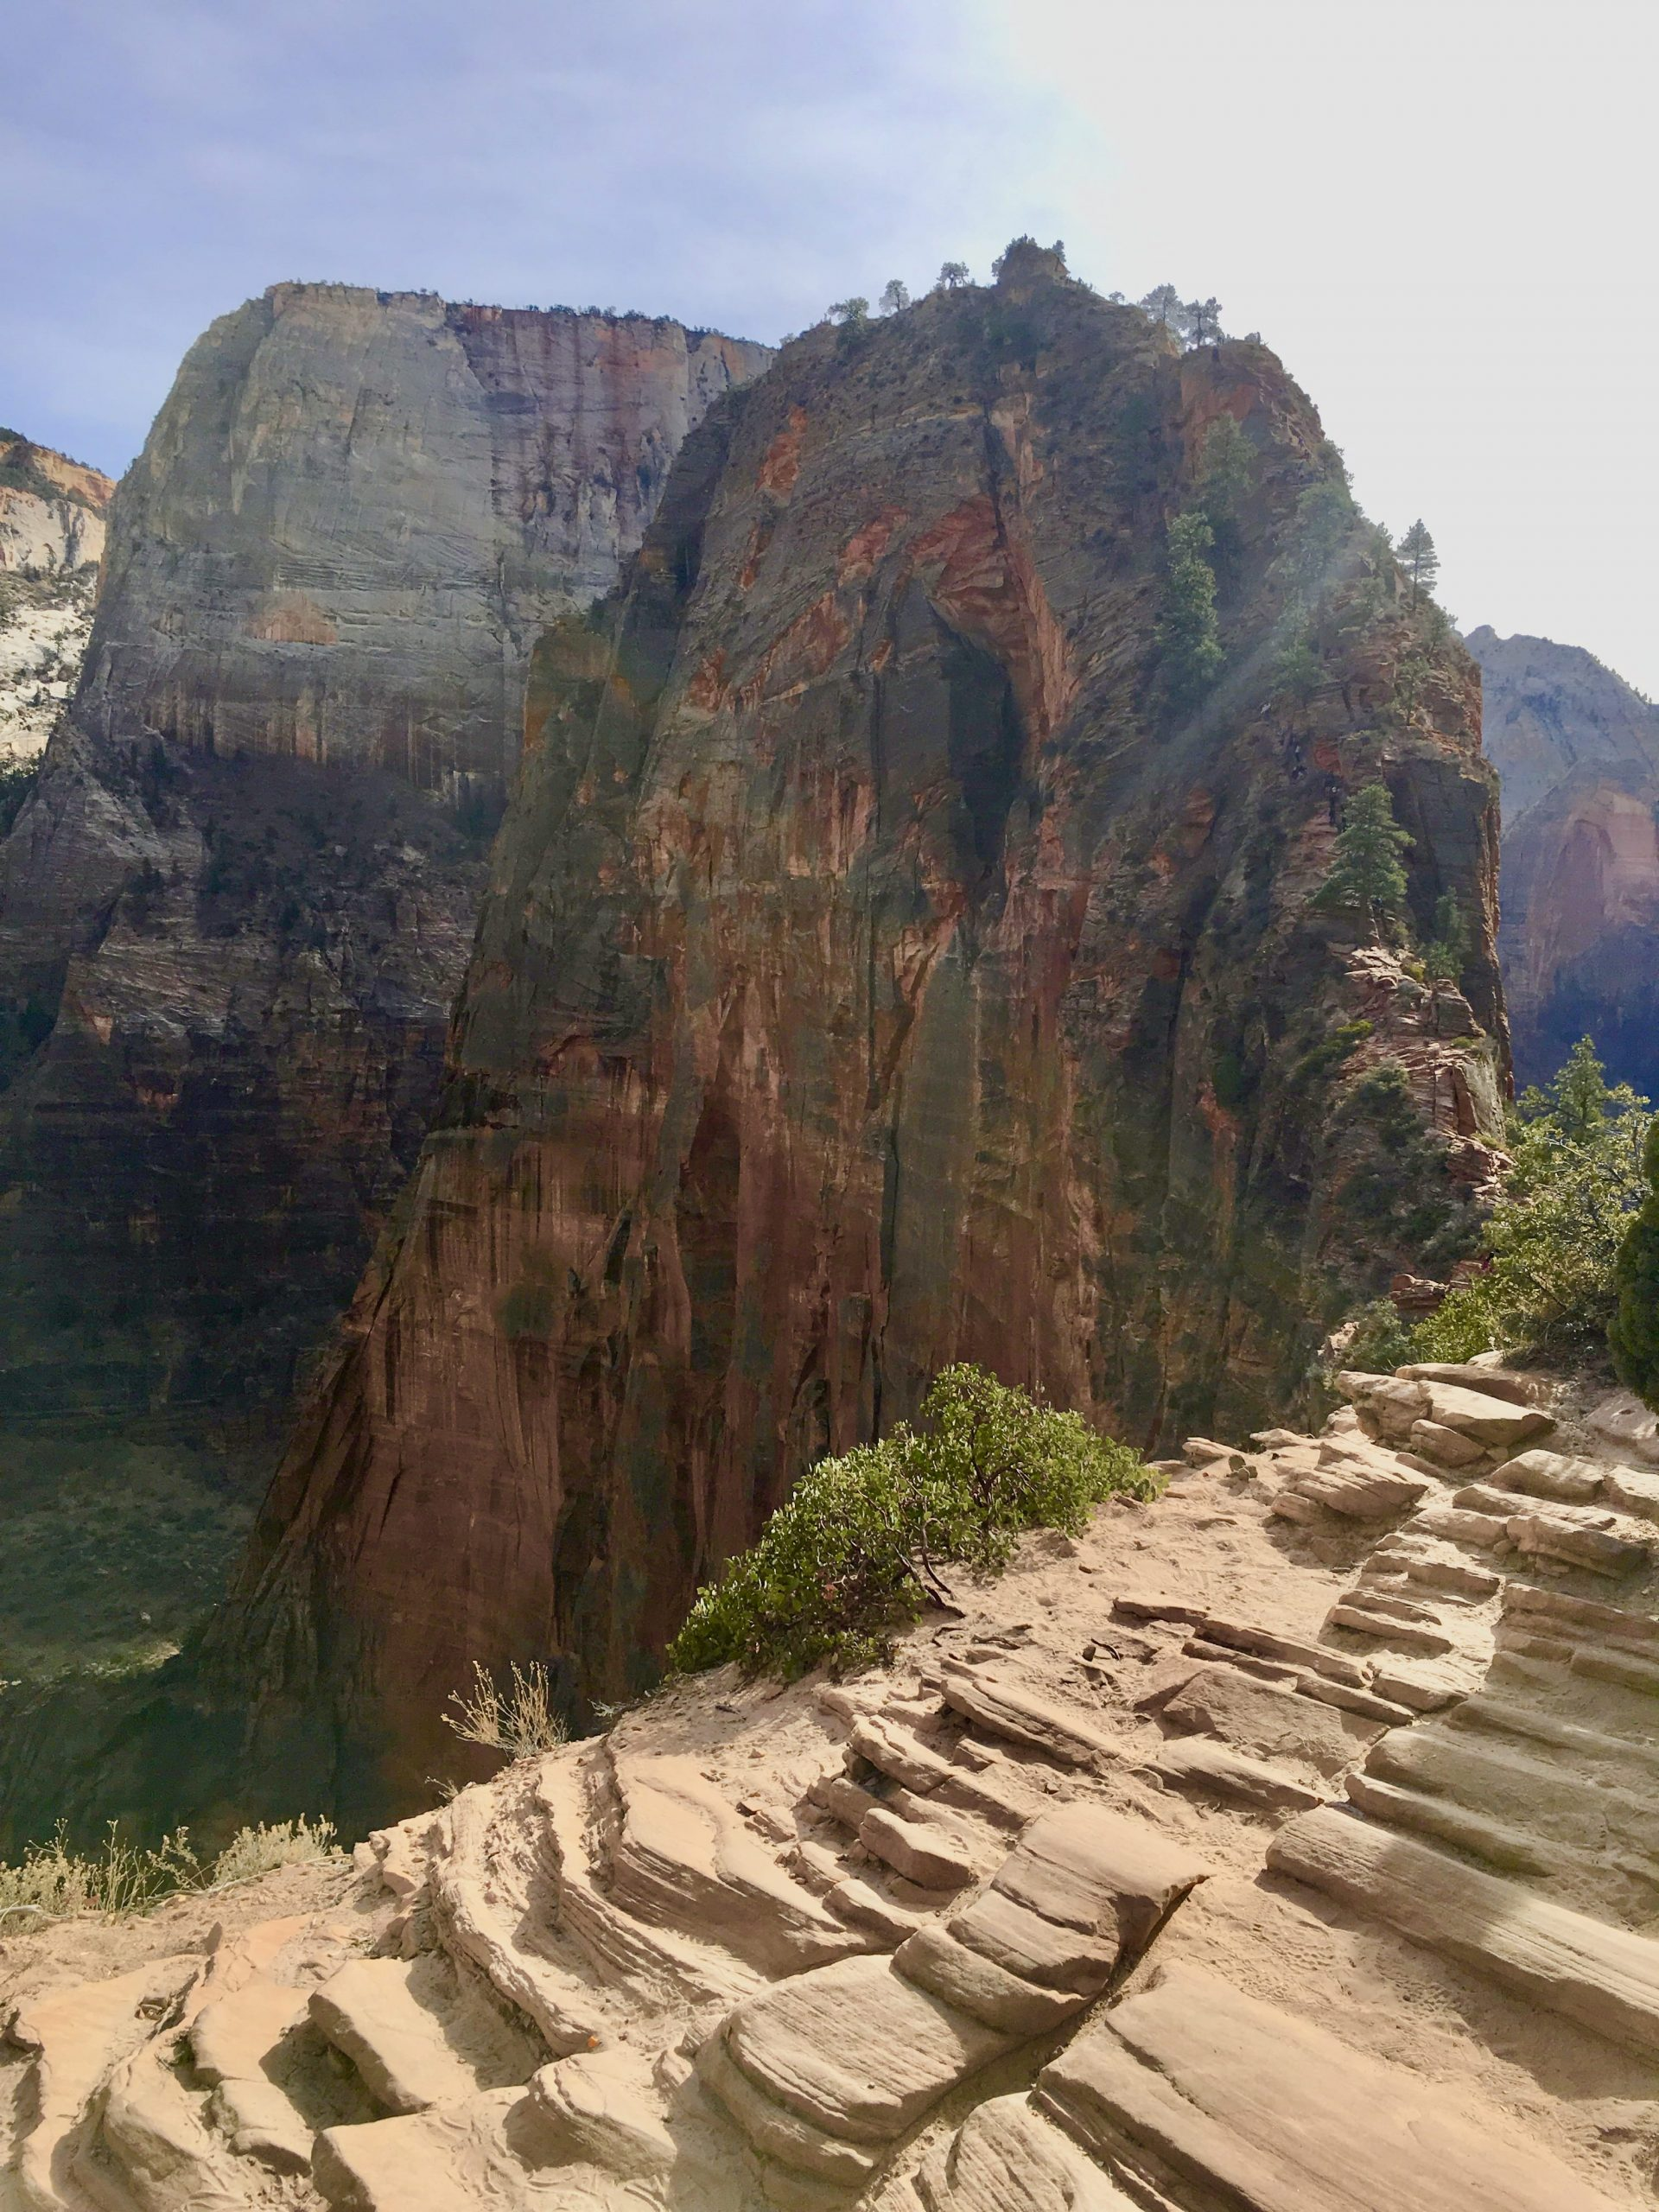 Angel's Landing - One of the Hikes at Zion National Park